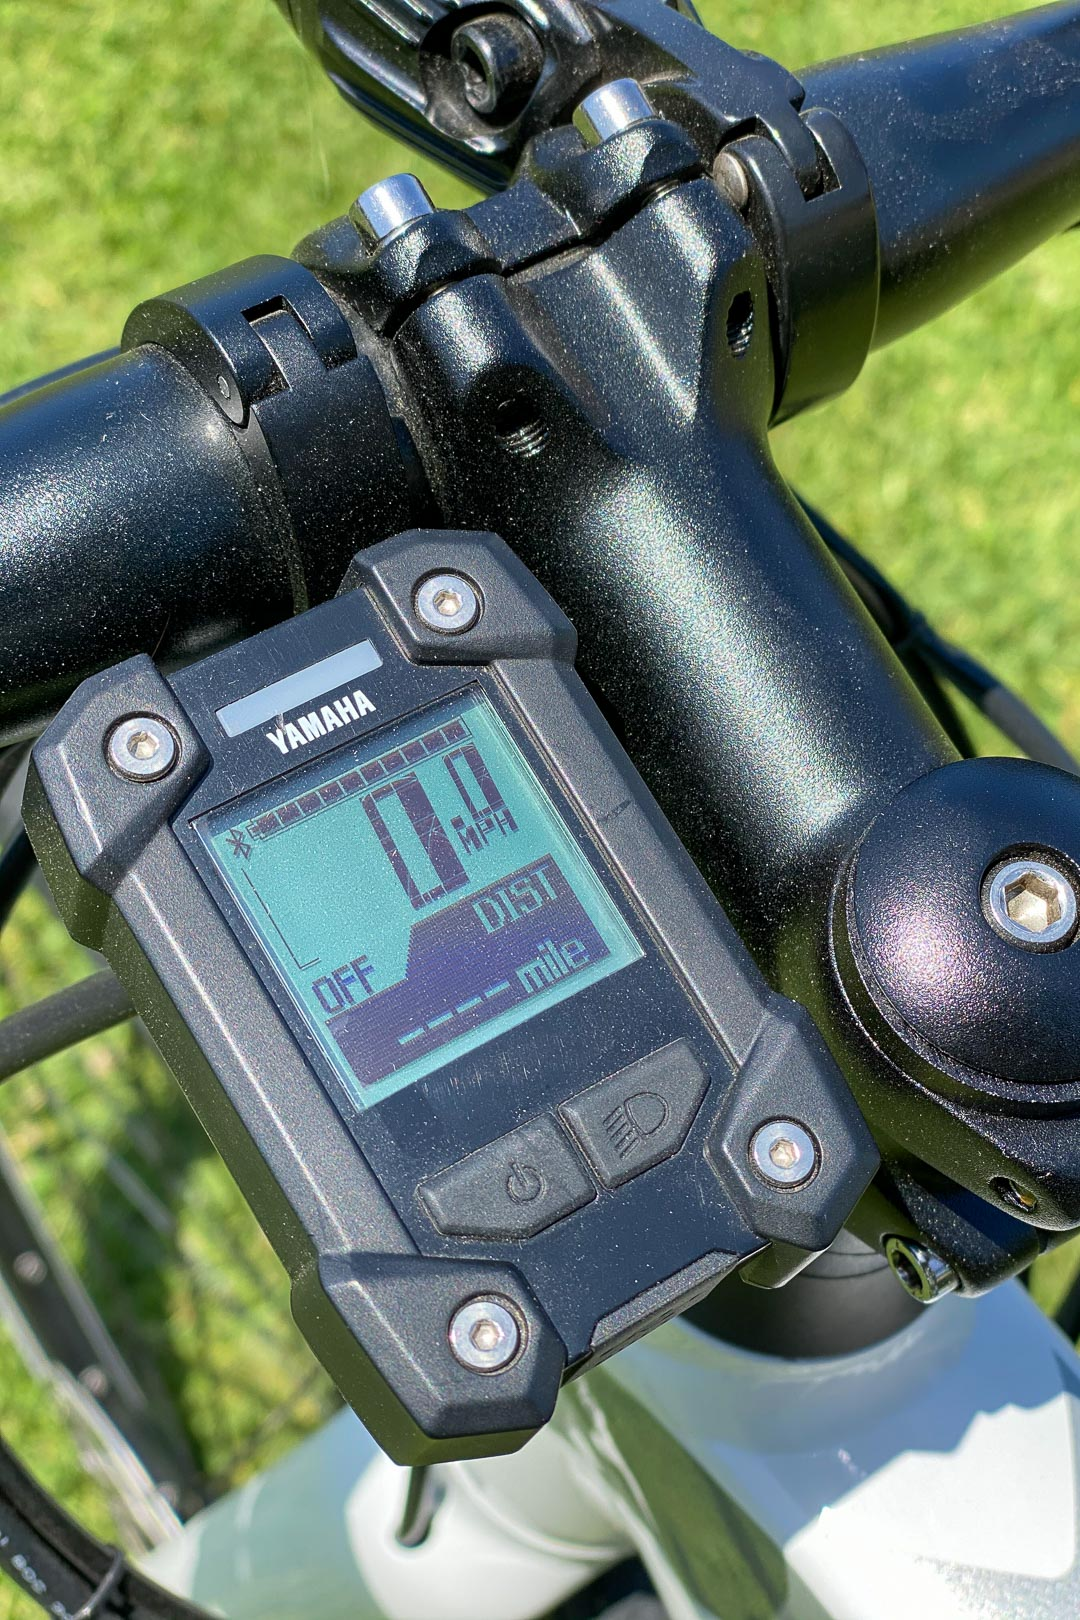 Yamaha Power Assist Bicycles - Review